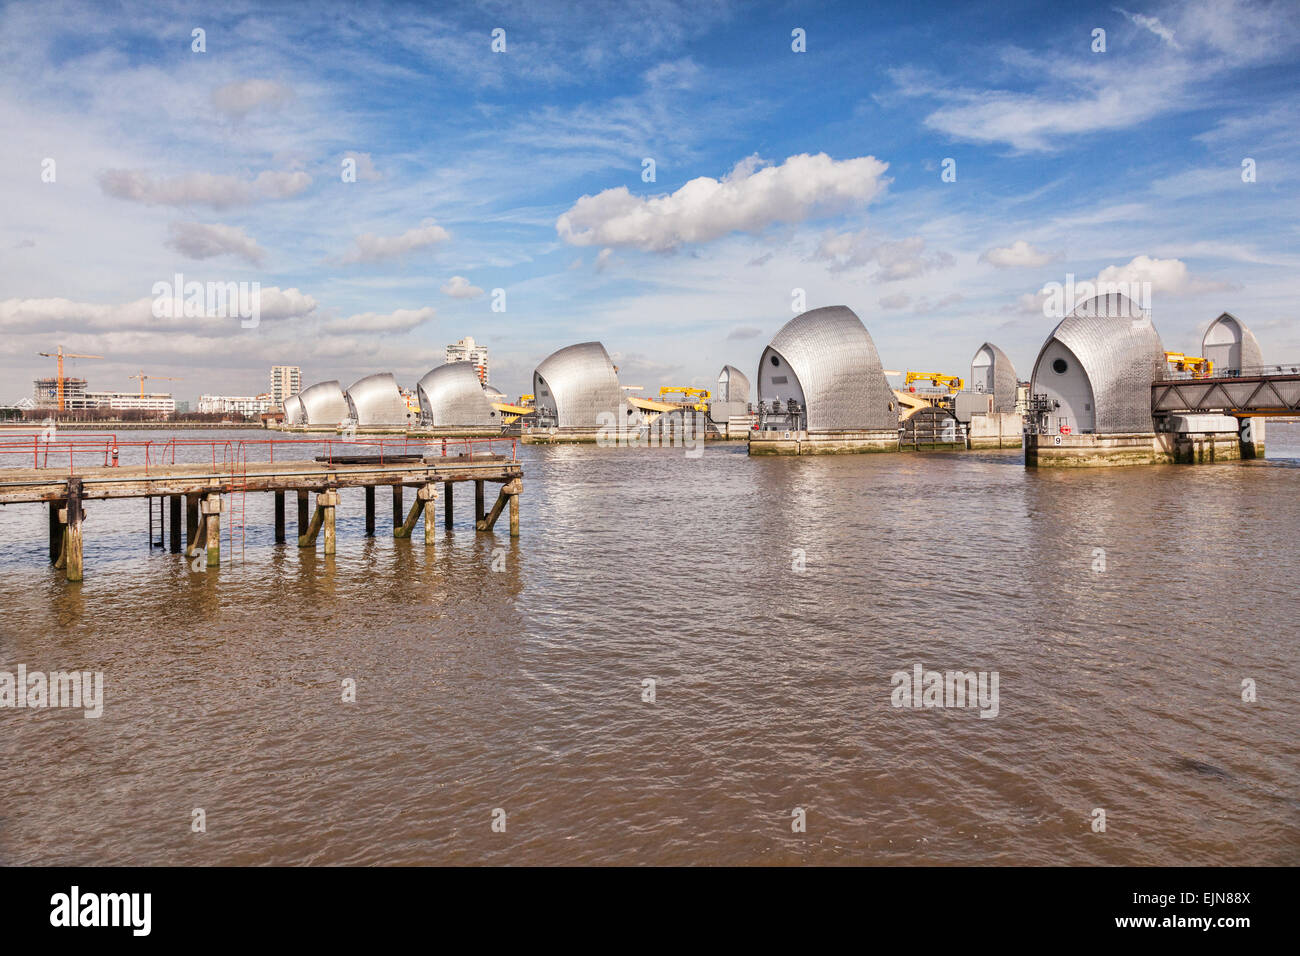 Thames Barrier, London, England, and an old jetty. - Stock Image